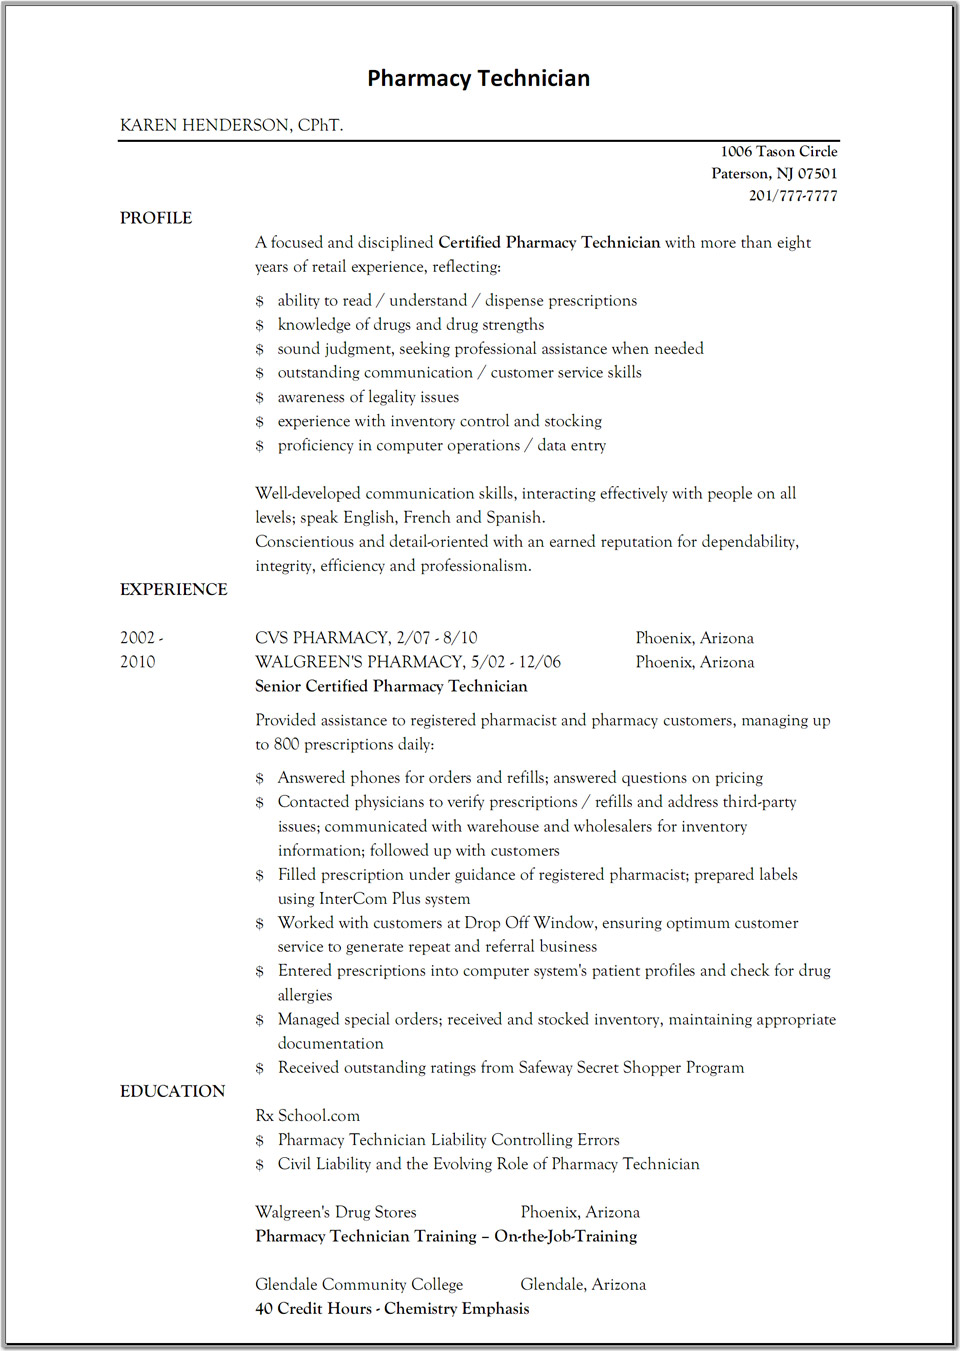 pharmacy technician resume samples - Pharmacy Technician Resume Sample